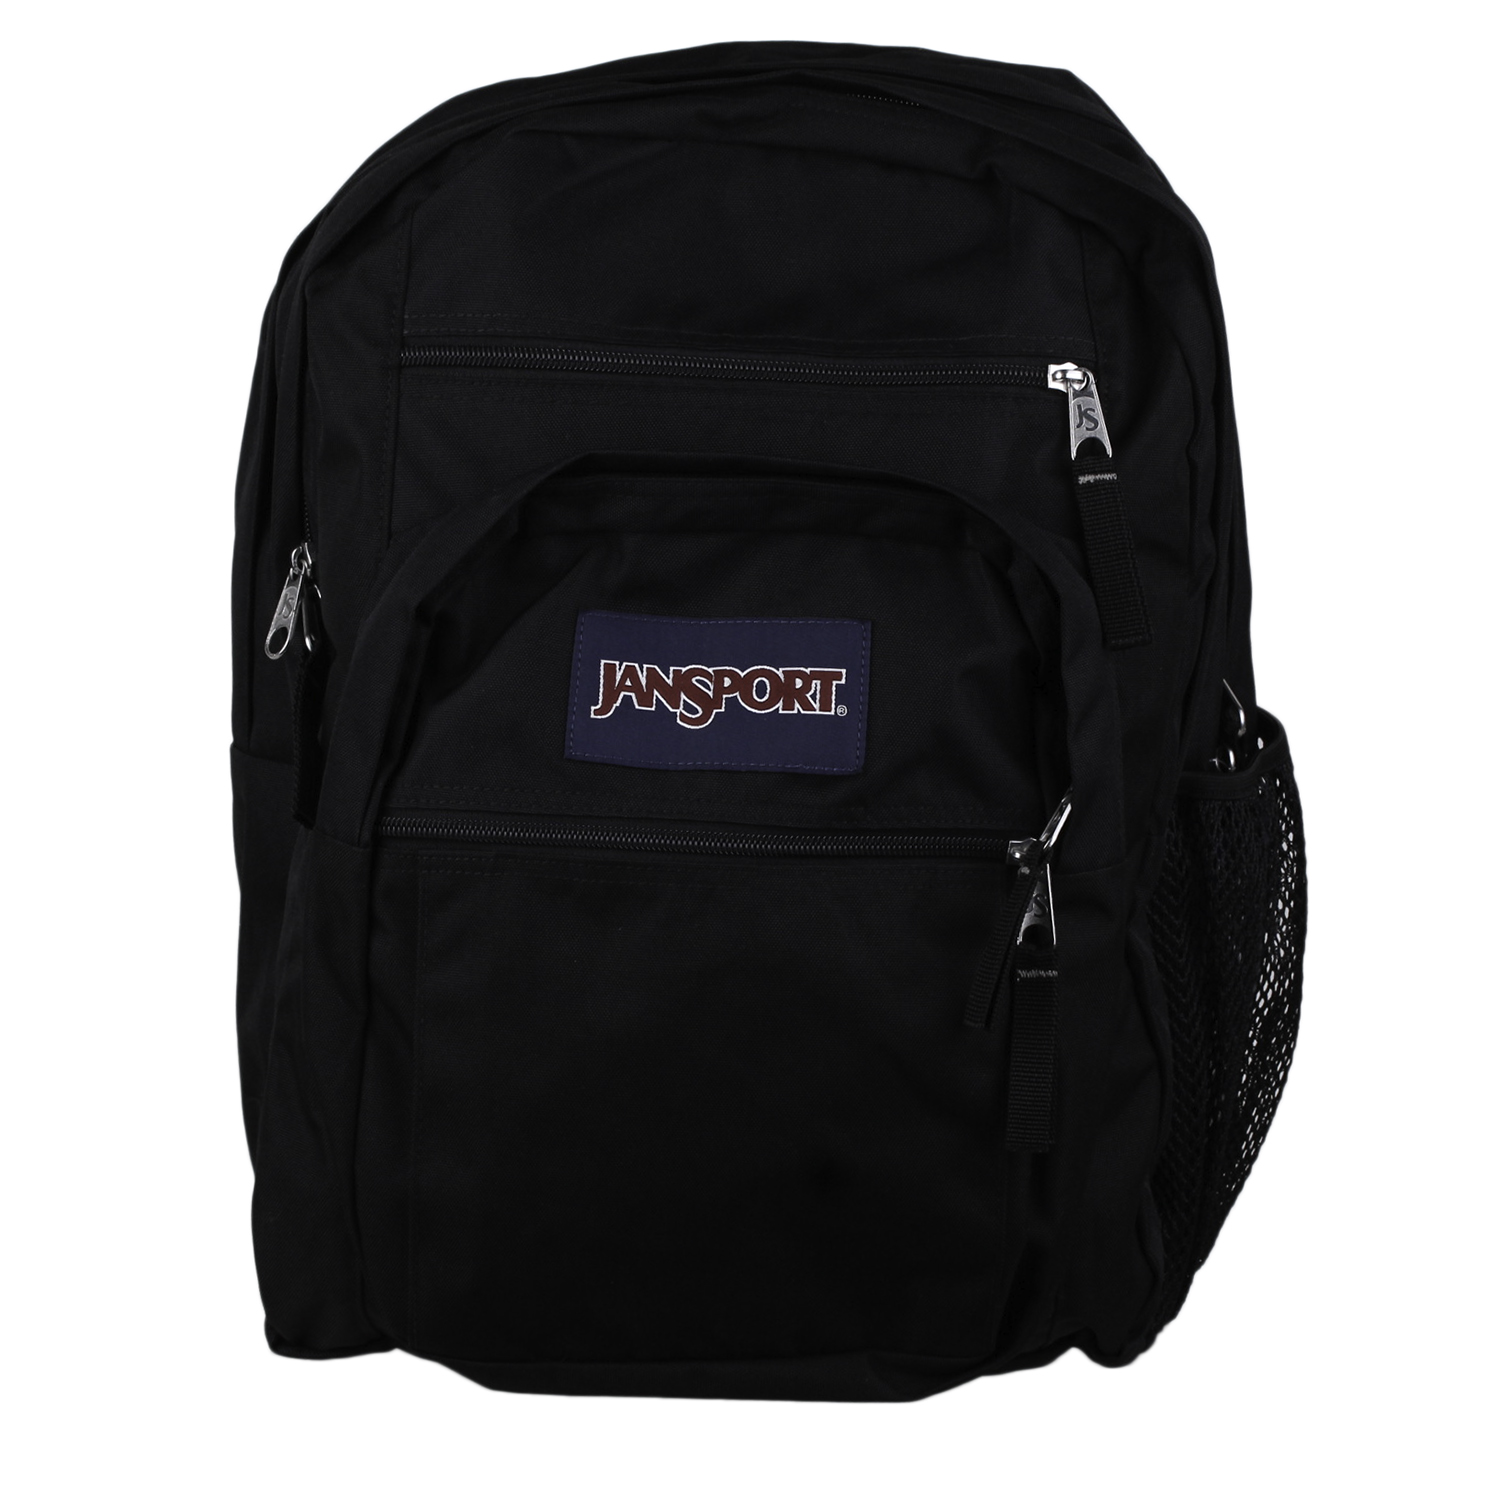 Size Of Jansport Backpack Backpack Tools